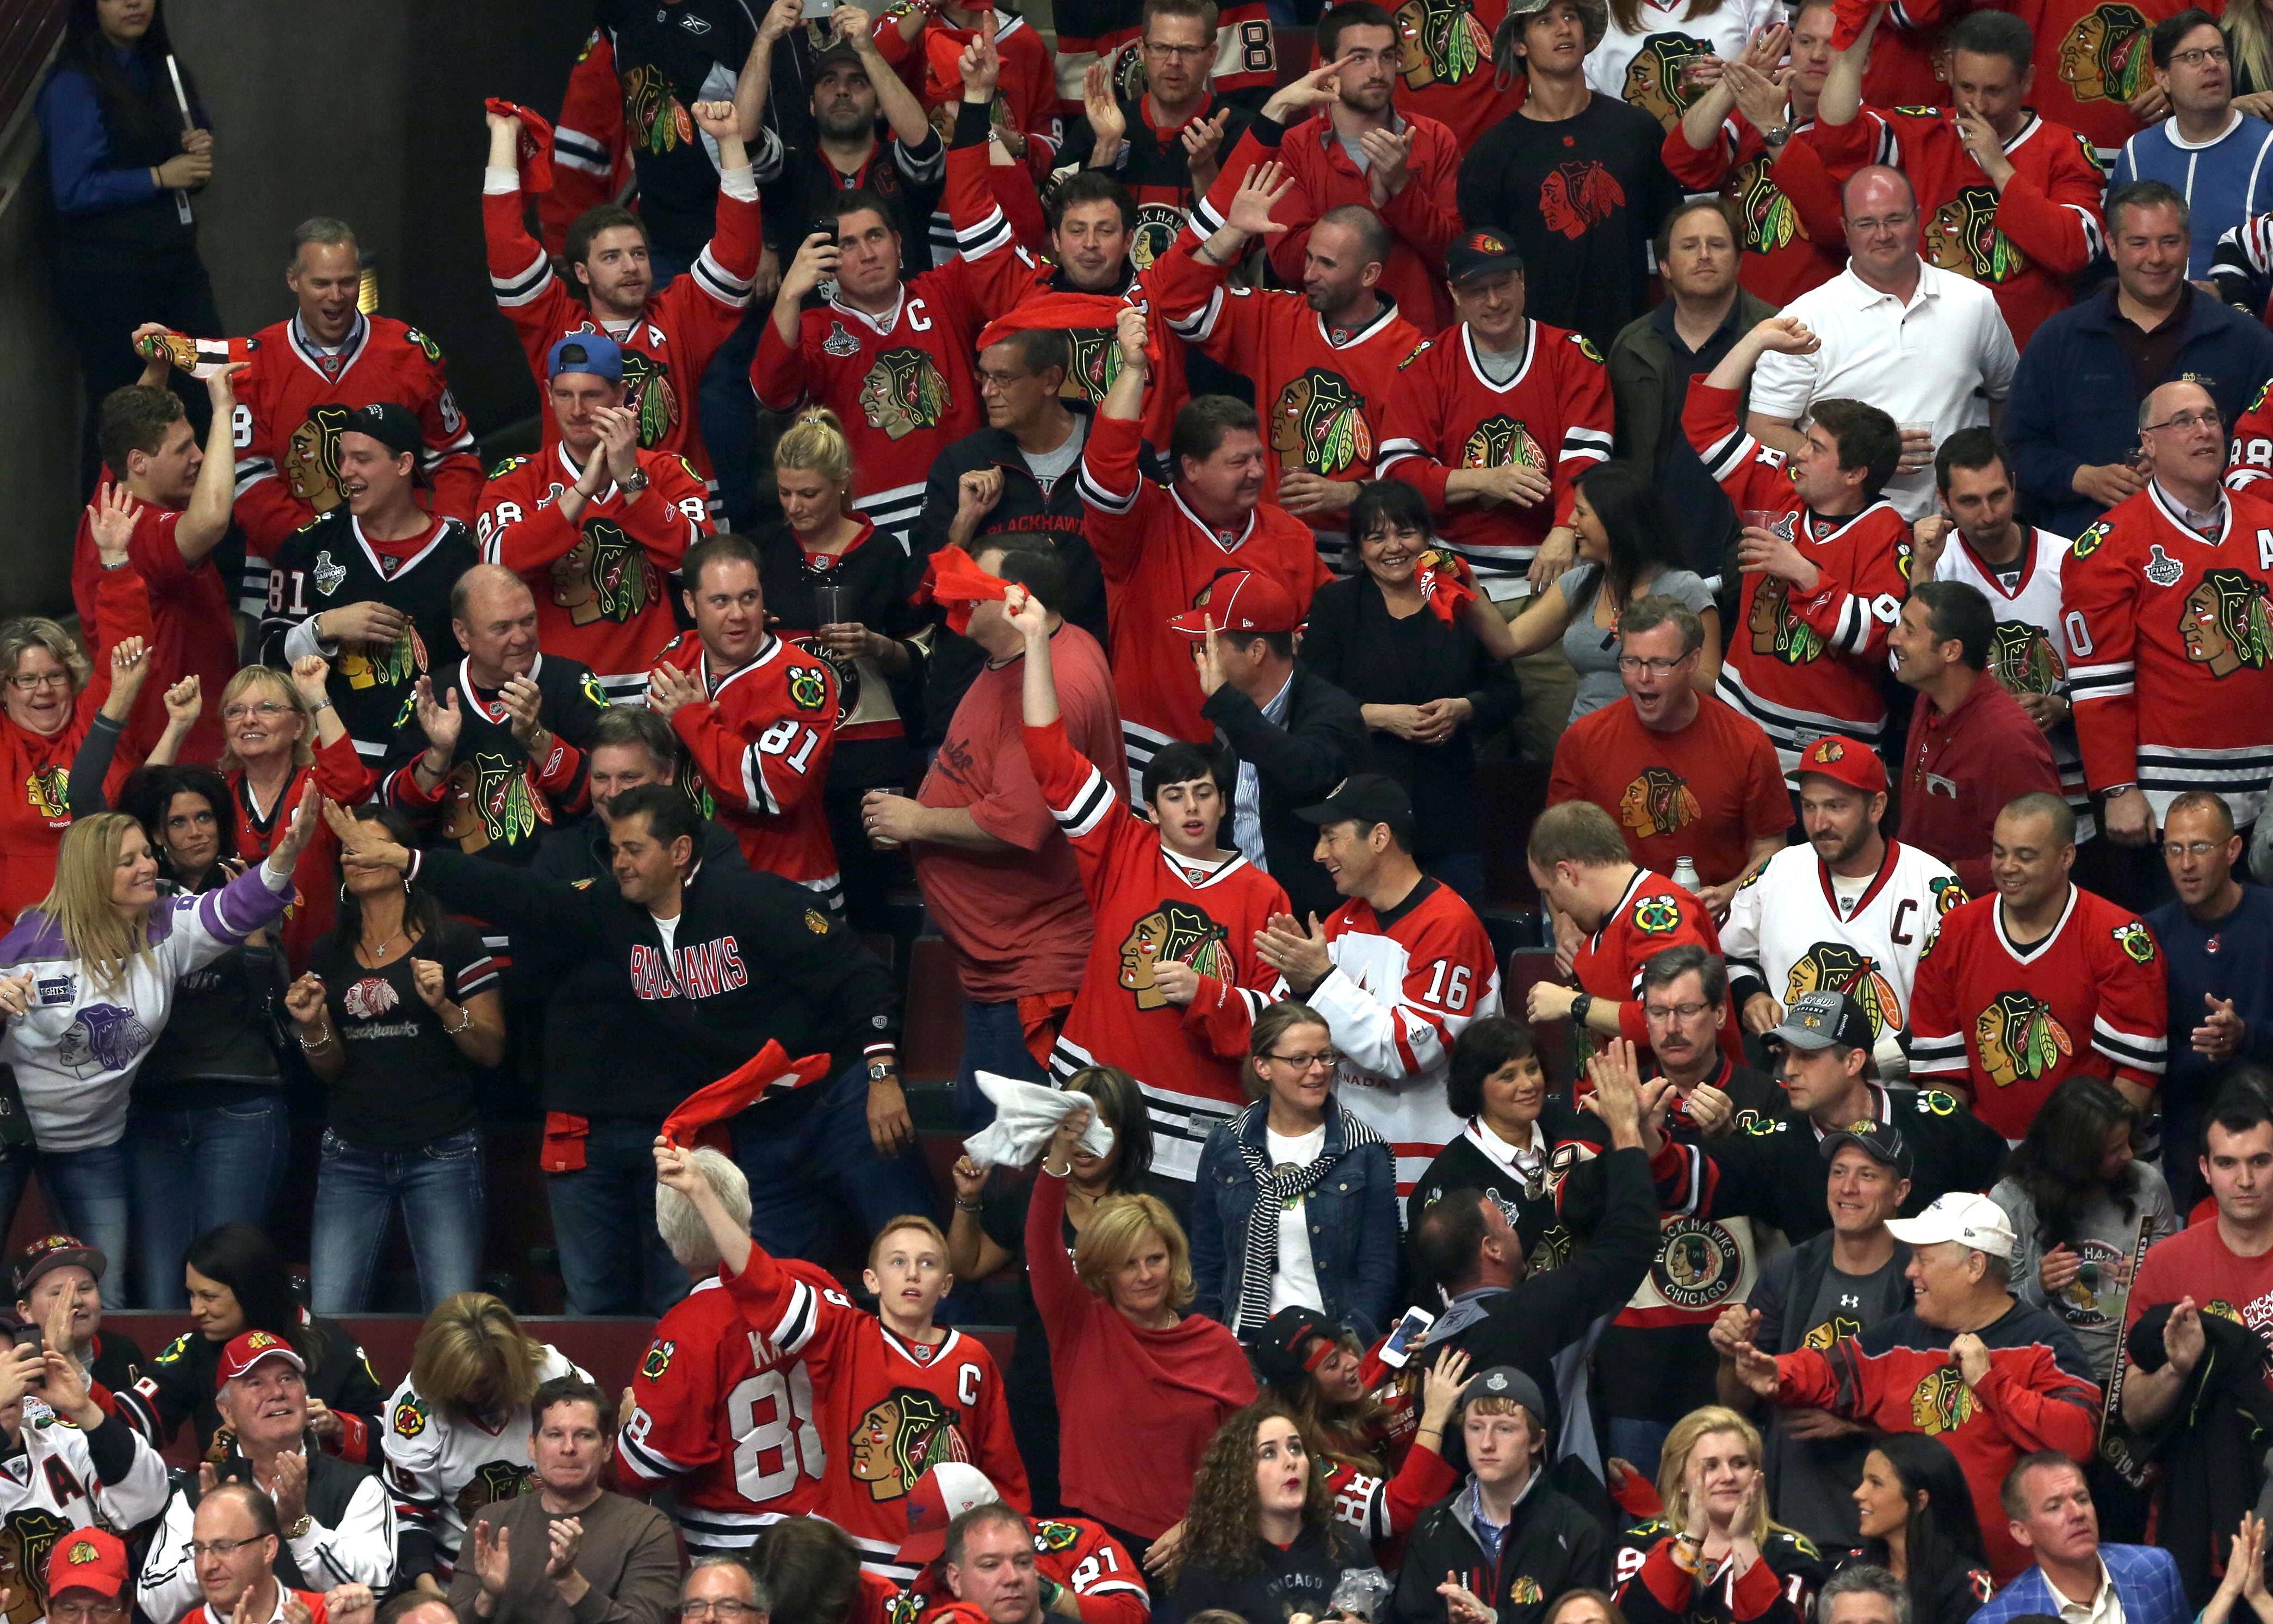 Tickets for possible Western Conference Final games at the United Center will be on sale at noon Thursday.